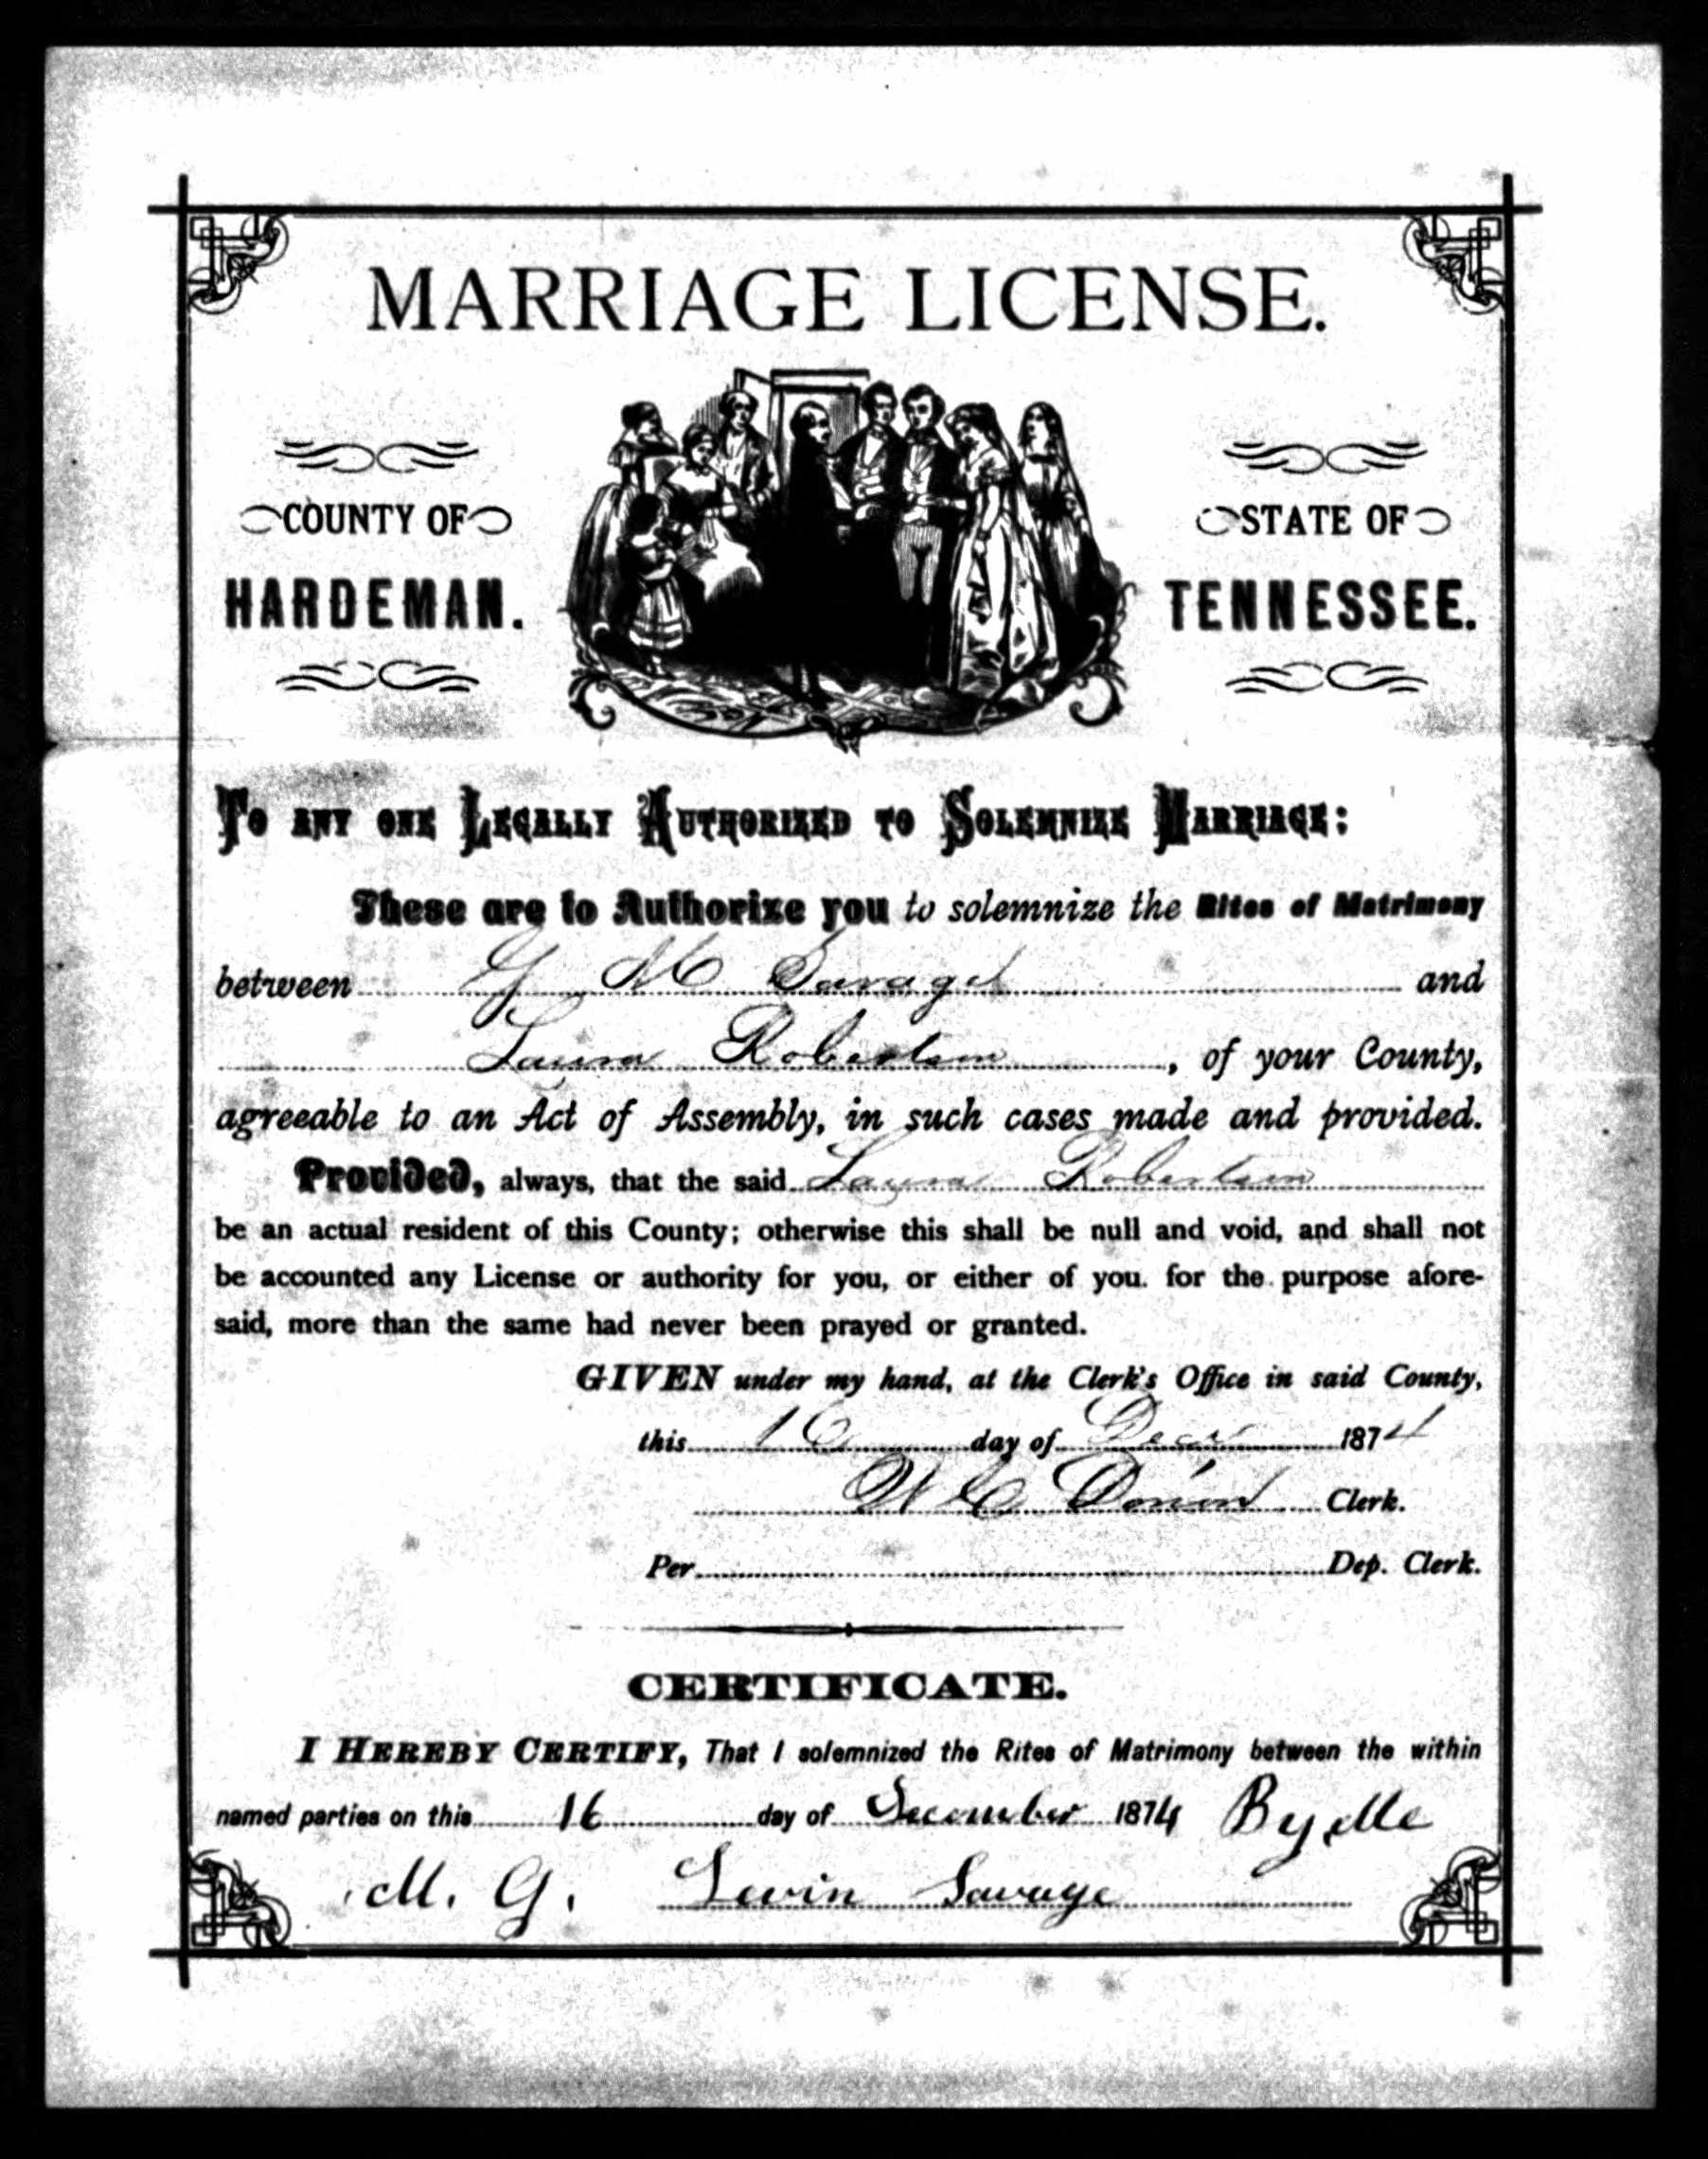 Giles Monroe Savage and Laura Robertson Savage 1874 Marriage License